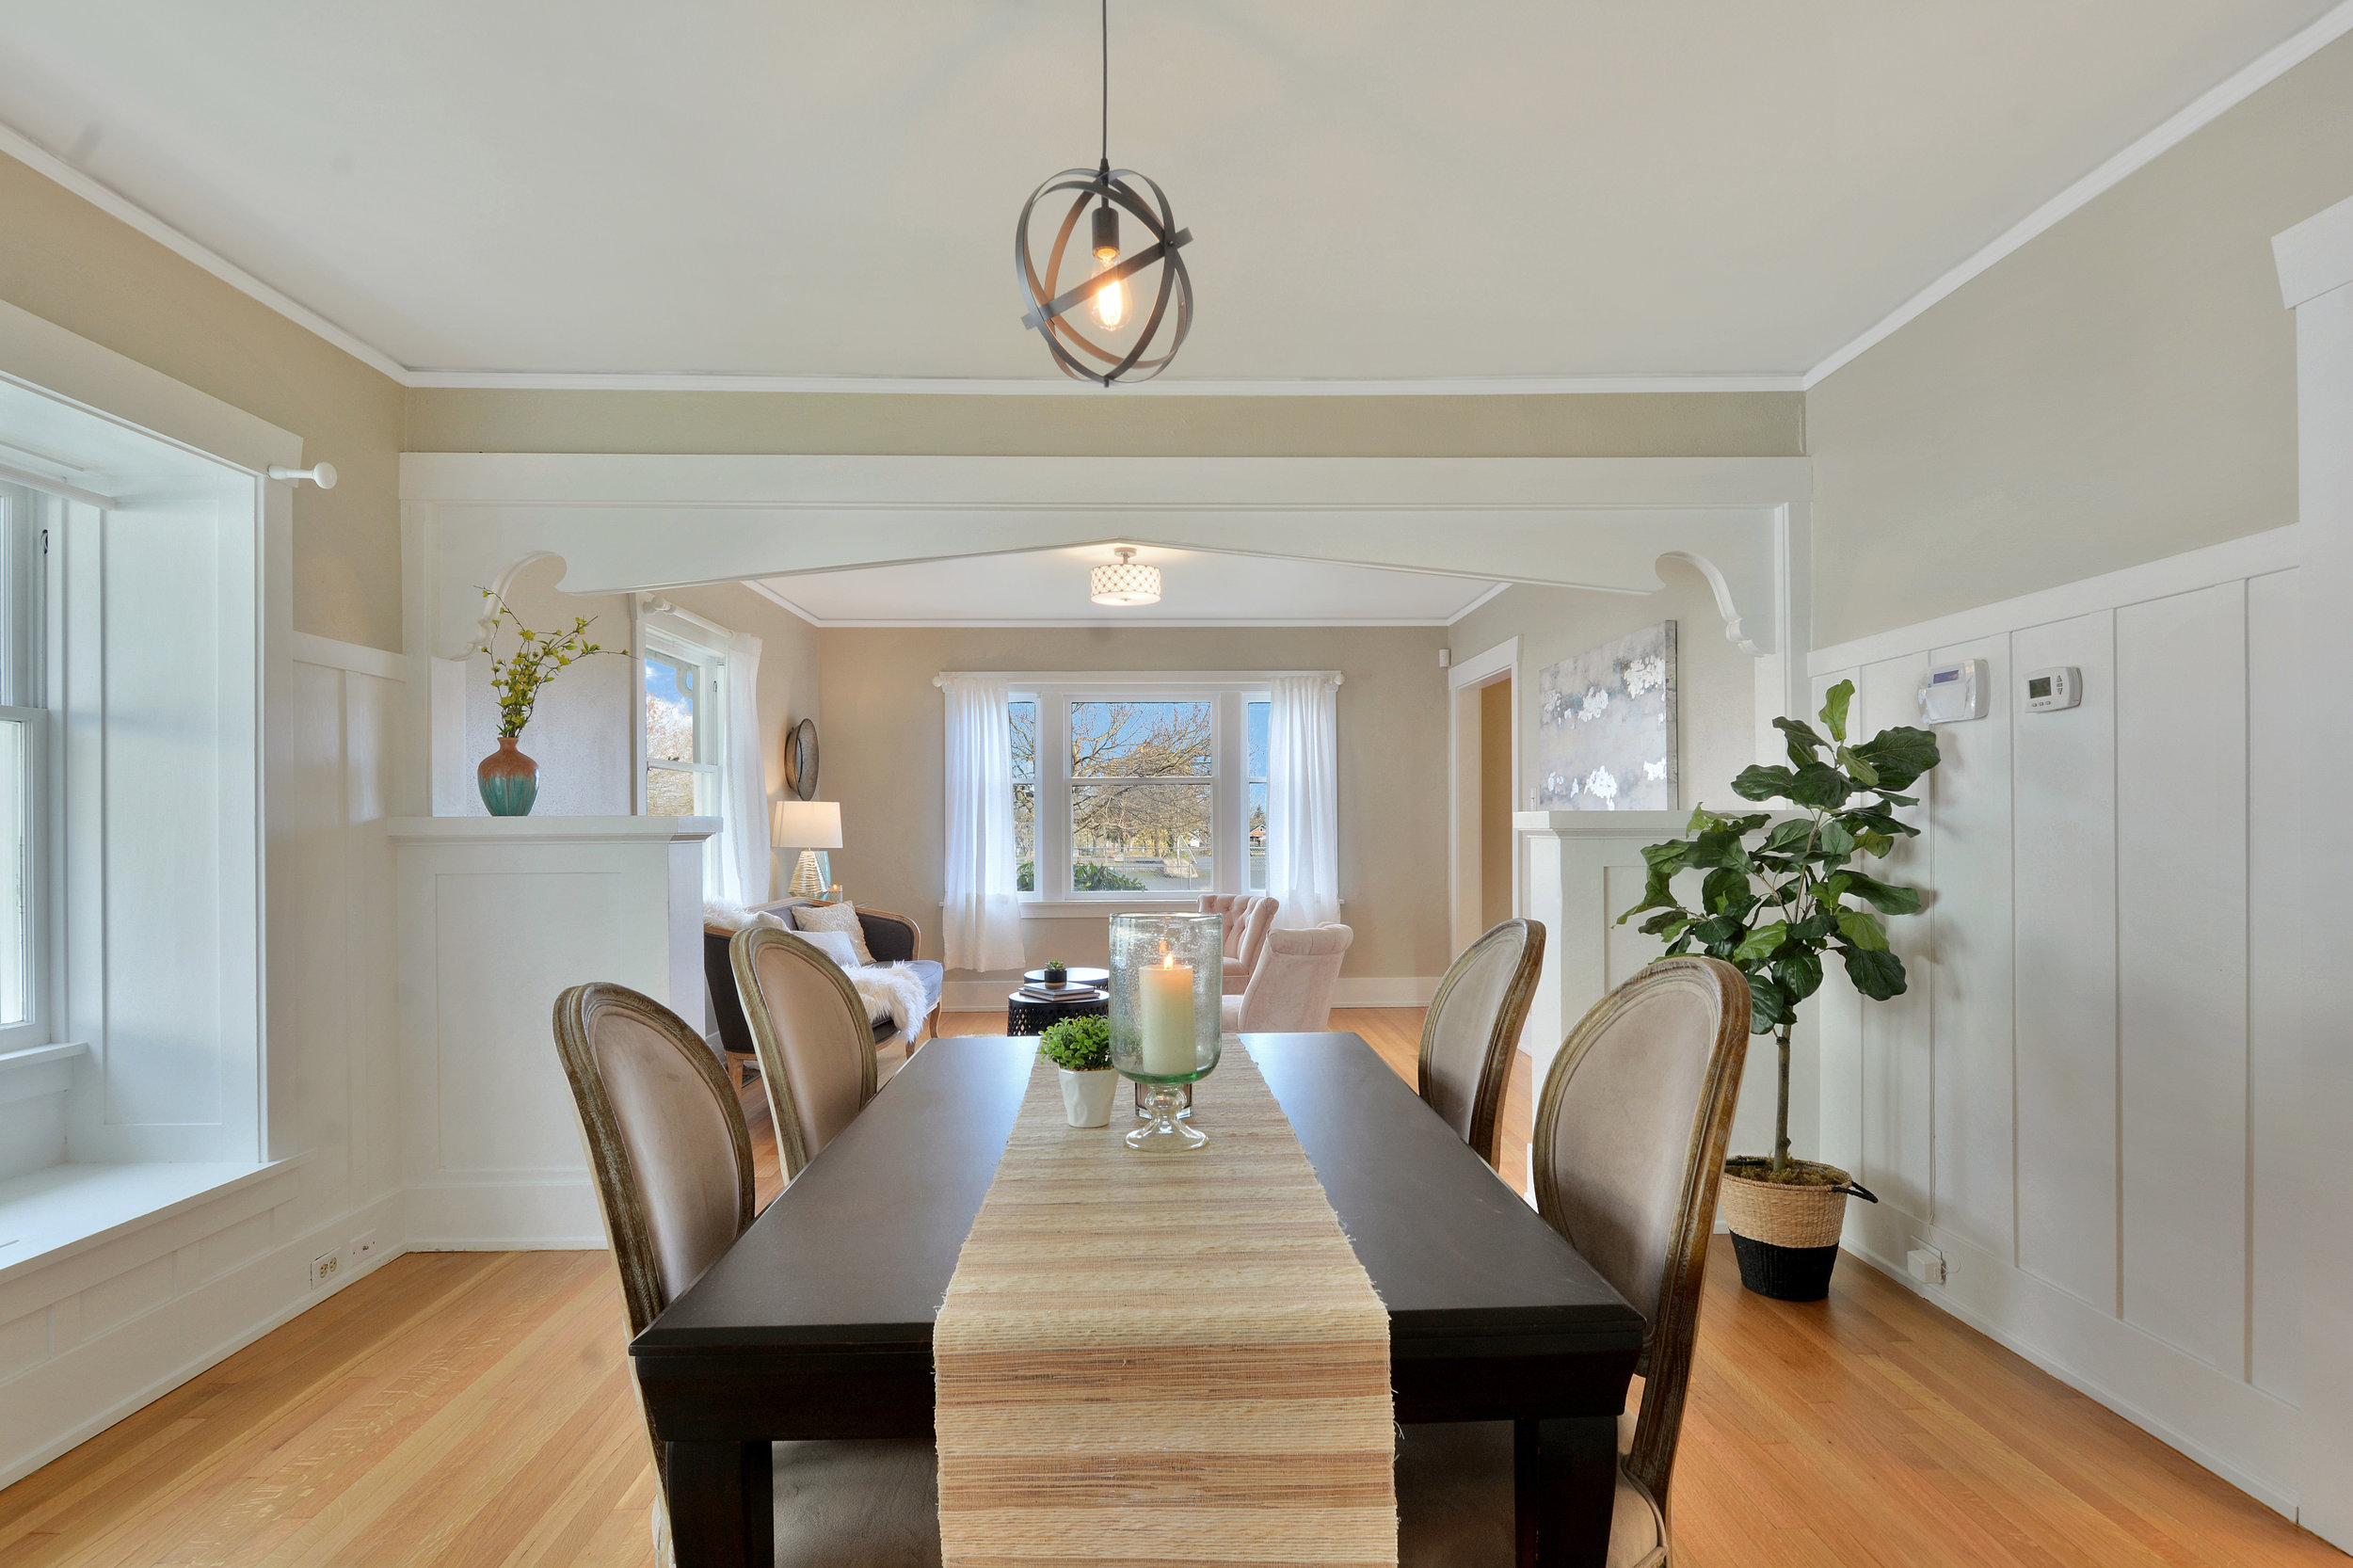 The dining room with its white wainscot, fresh paint, and beautiful oak floor as seen from the kitchen.